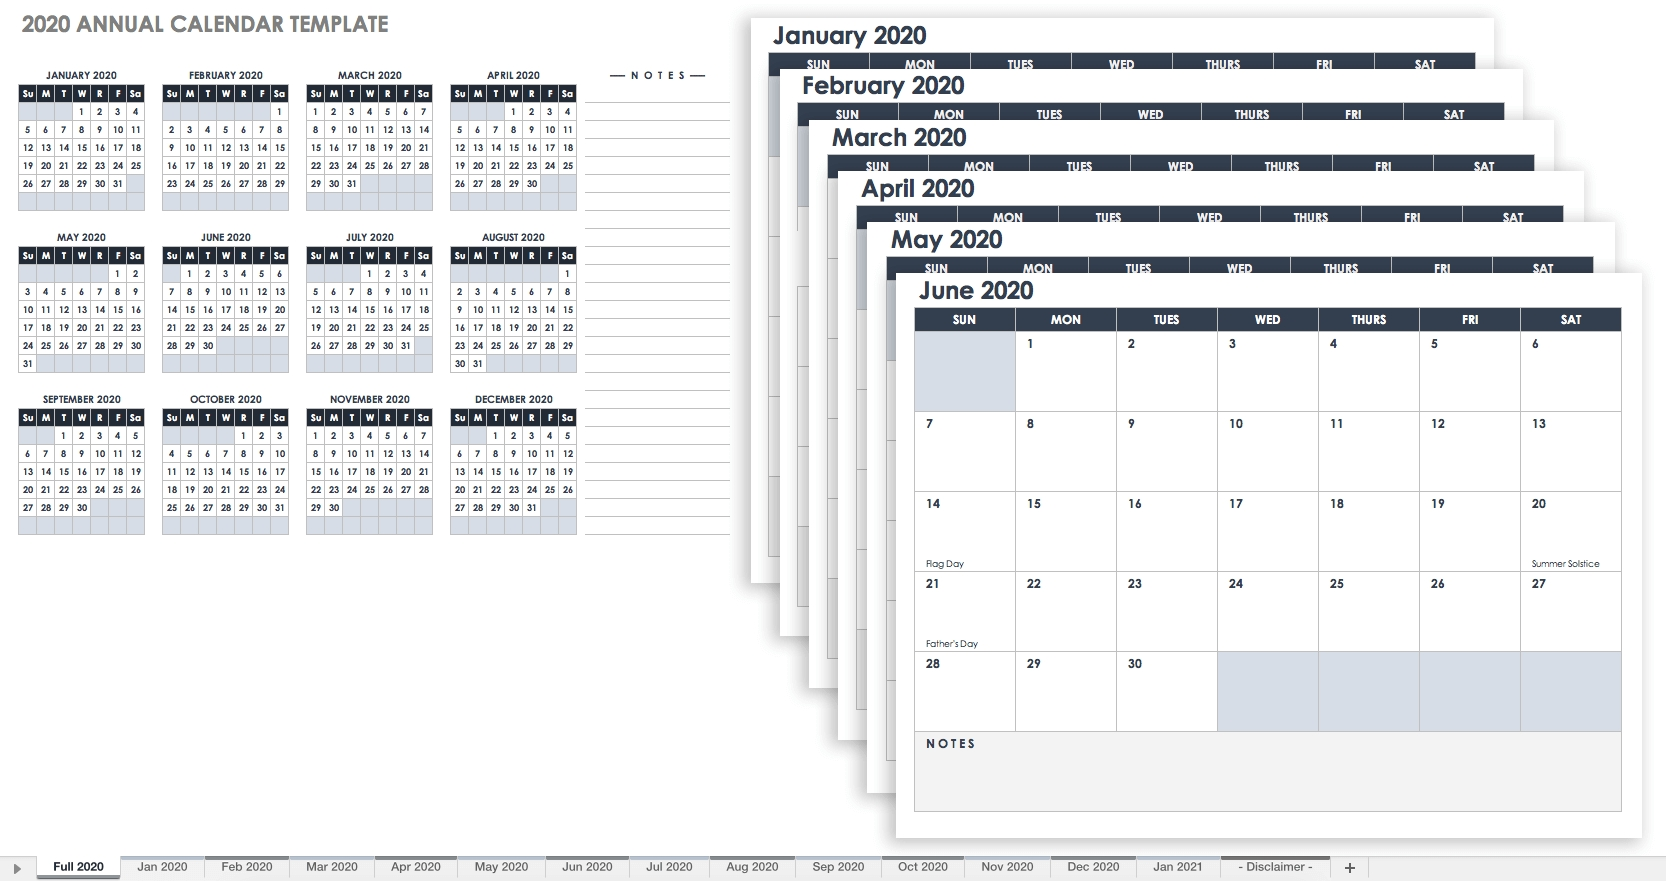 Free Blank Calendar Templates - Smartsheet inside Day And Time Calendar Template